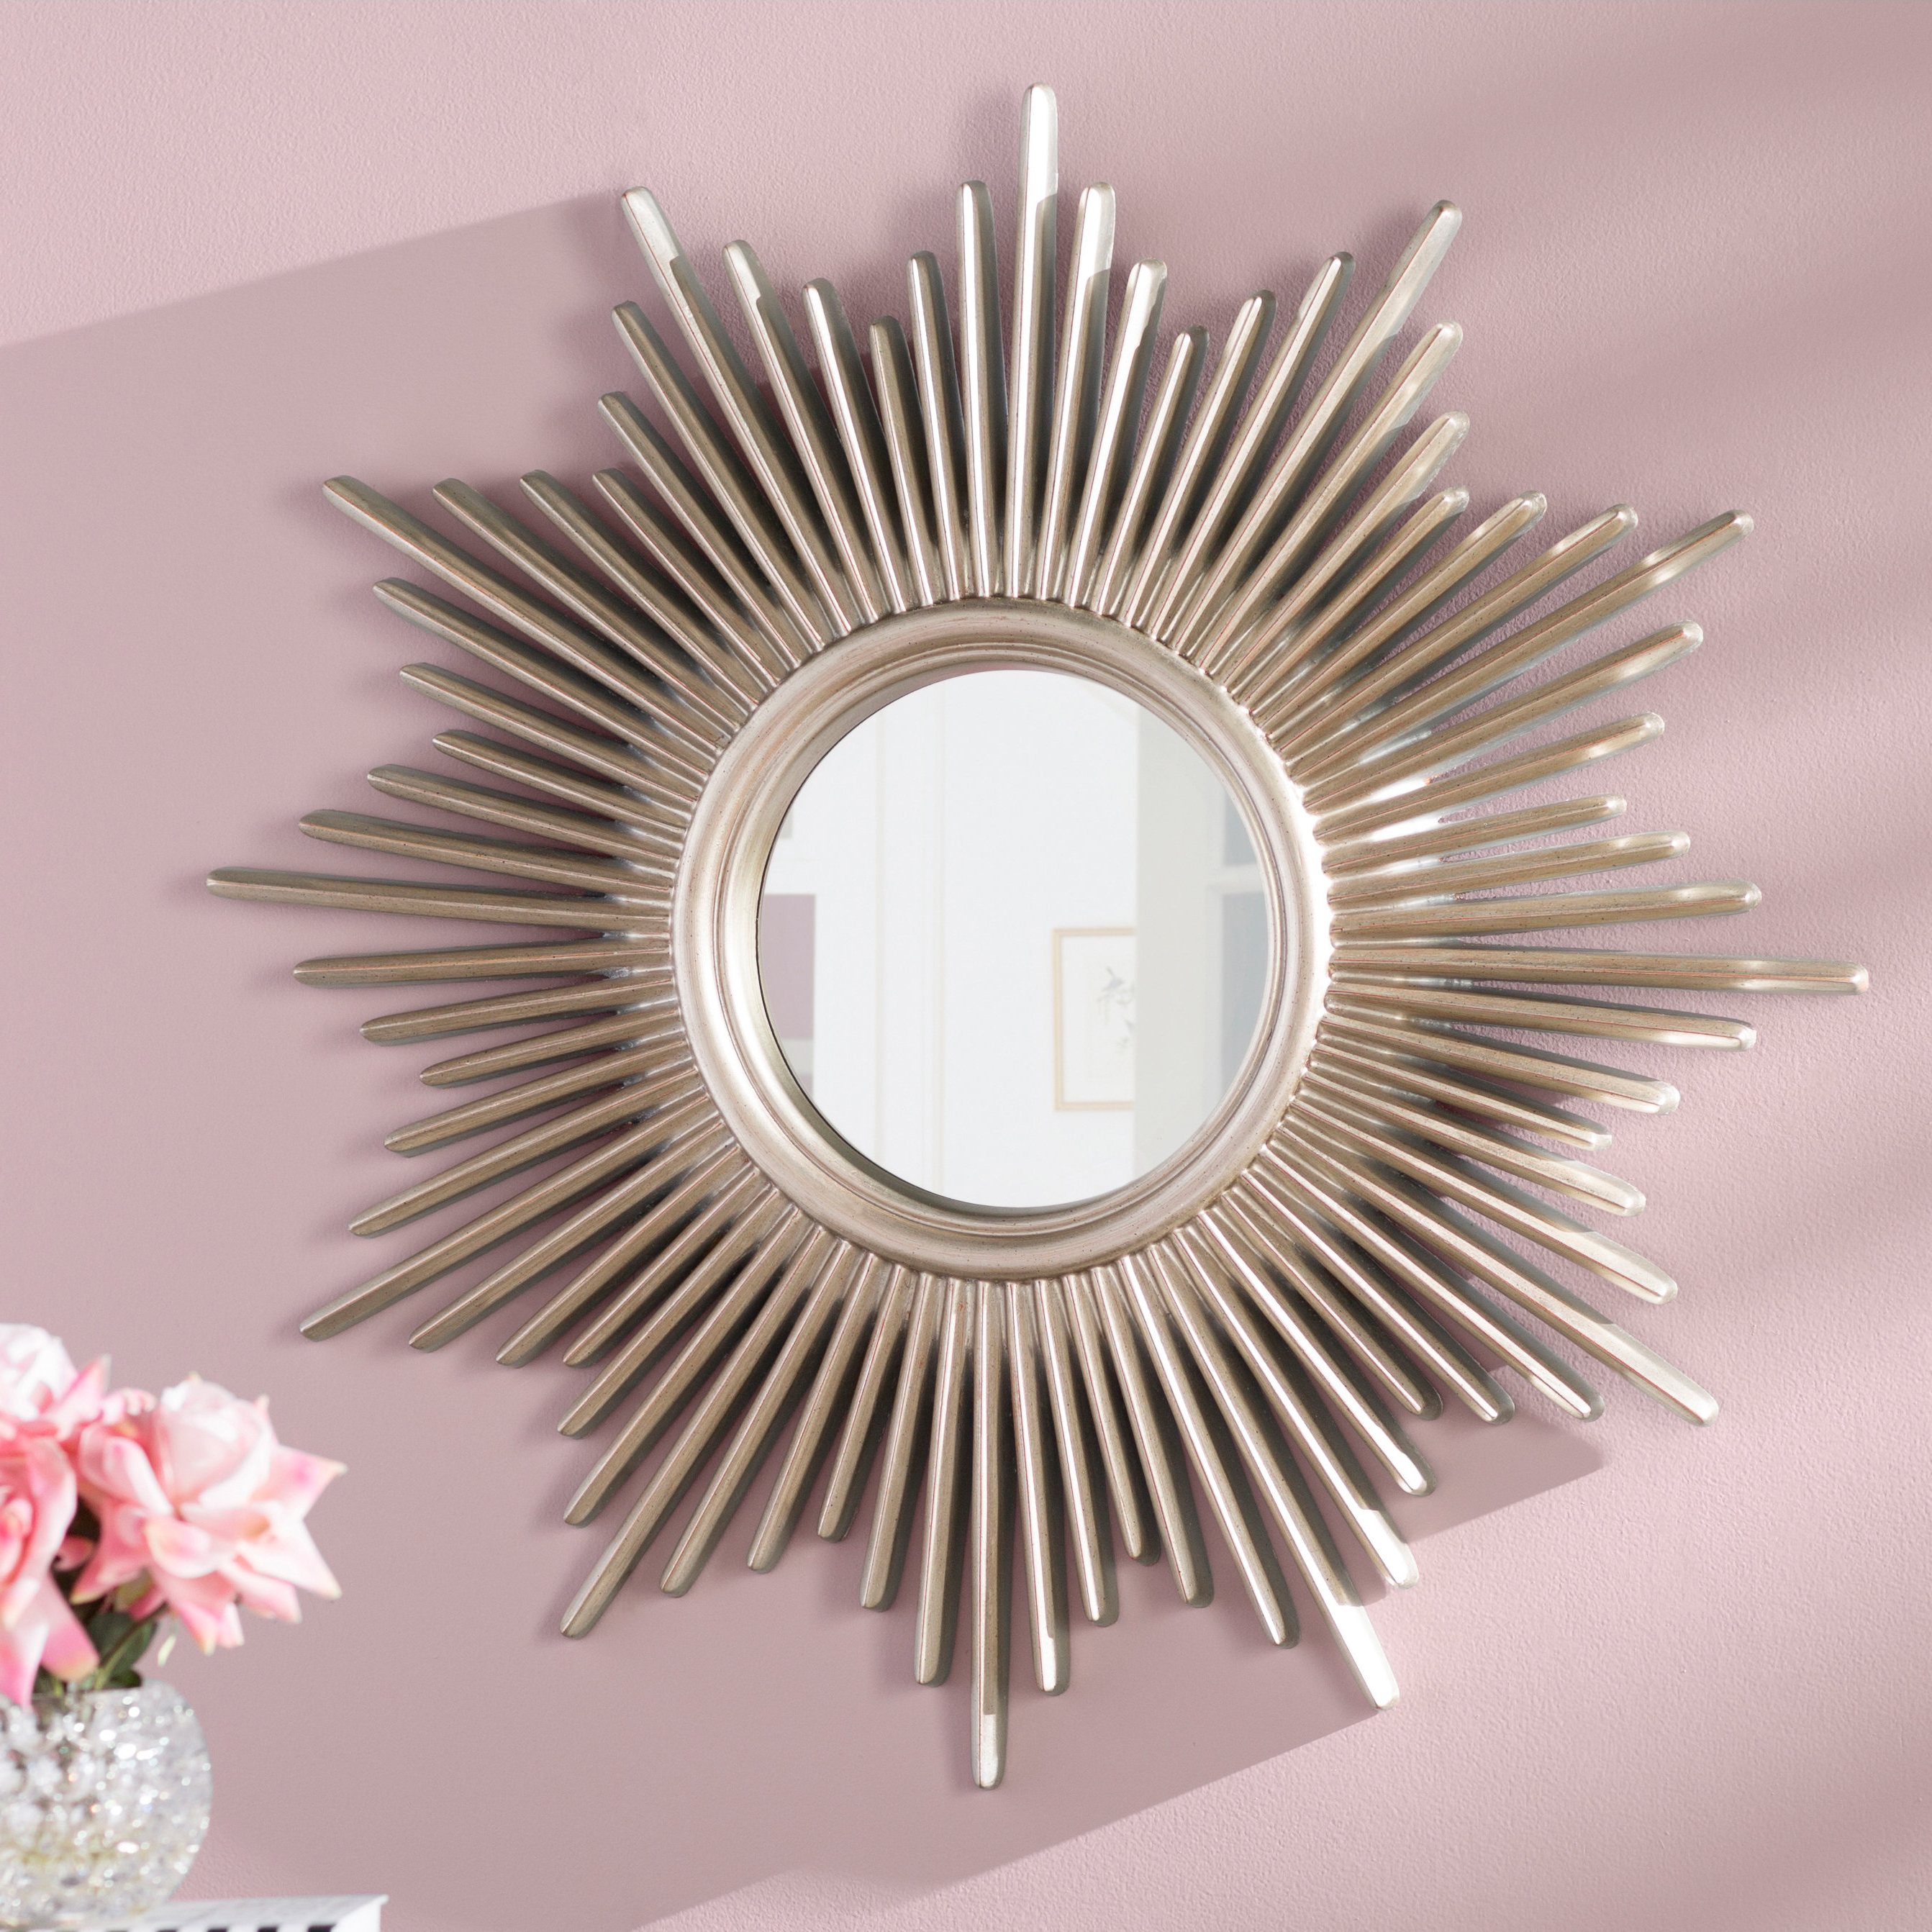 Josephson Starburst Glam Beveled Accent Wall Mirror In Best And Newest Perillo Burst Wood Accent Mirrors (Gallery 17 of 20)